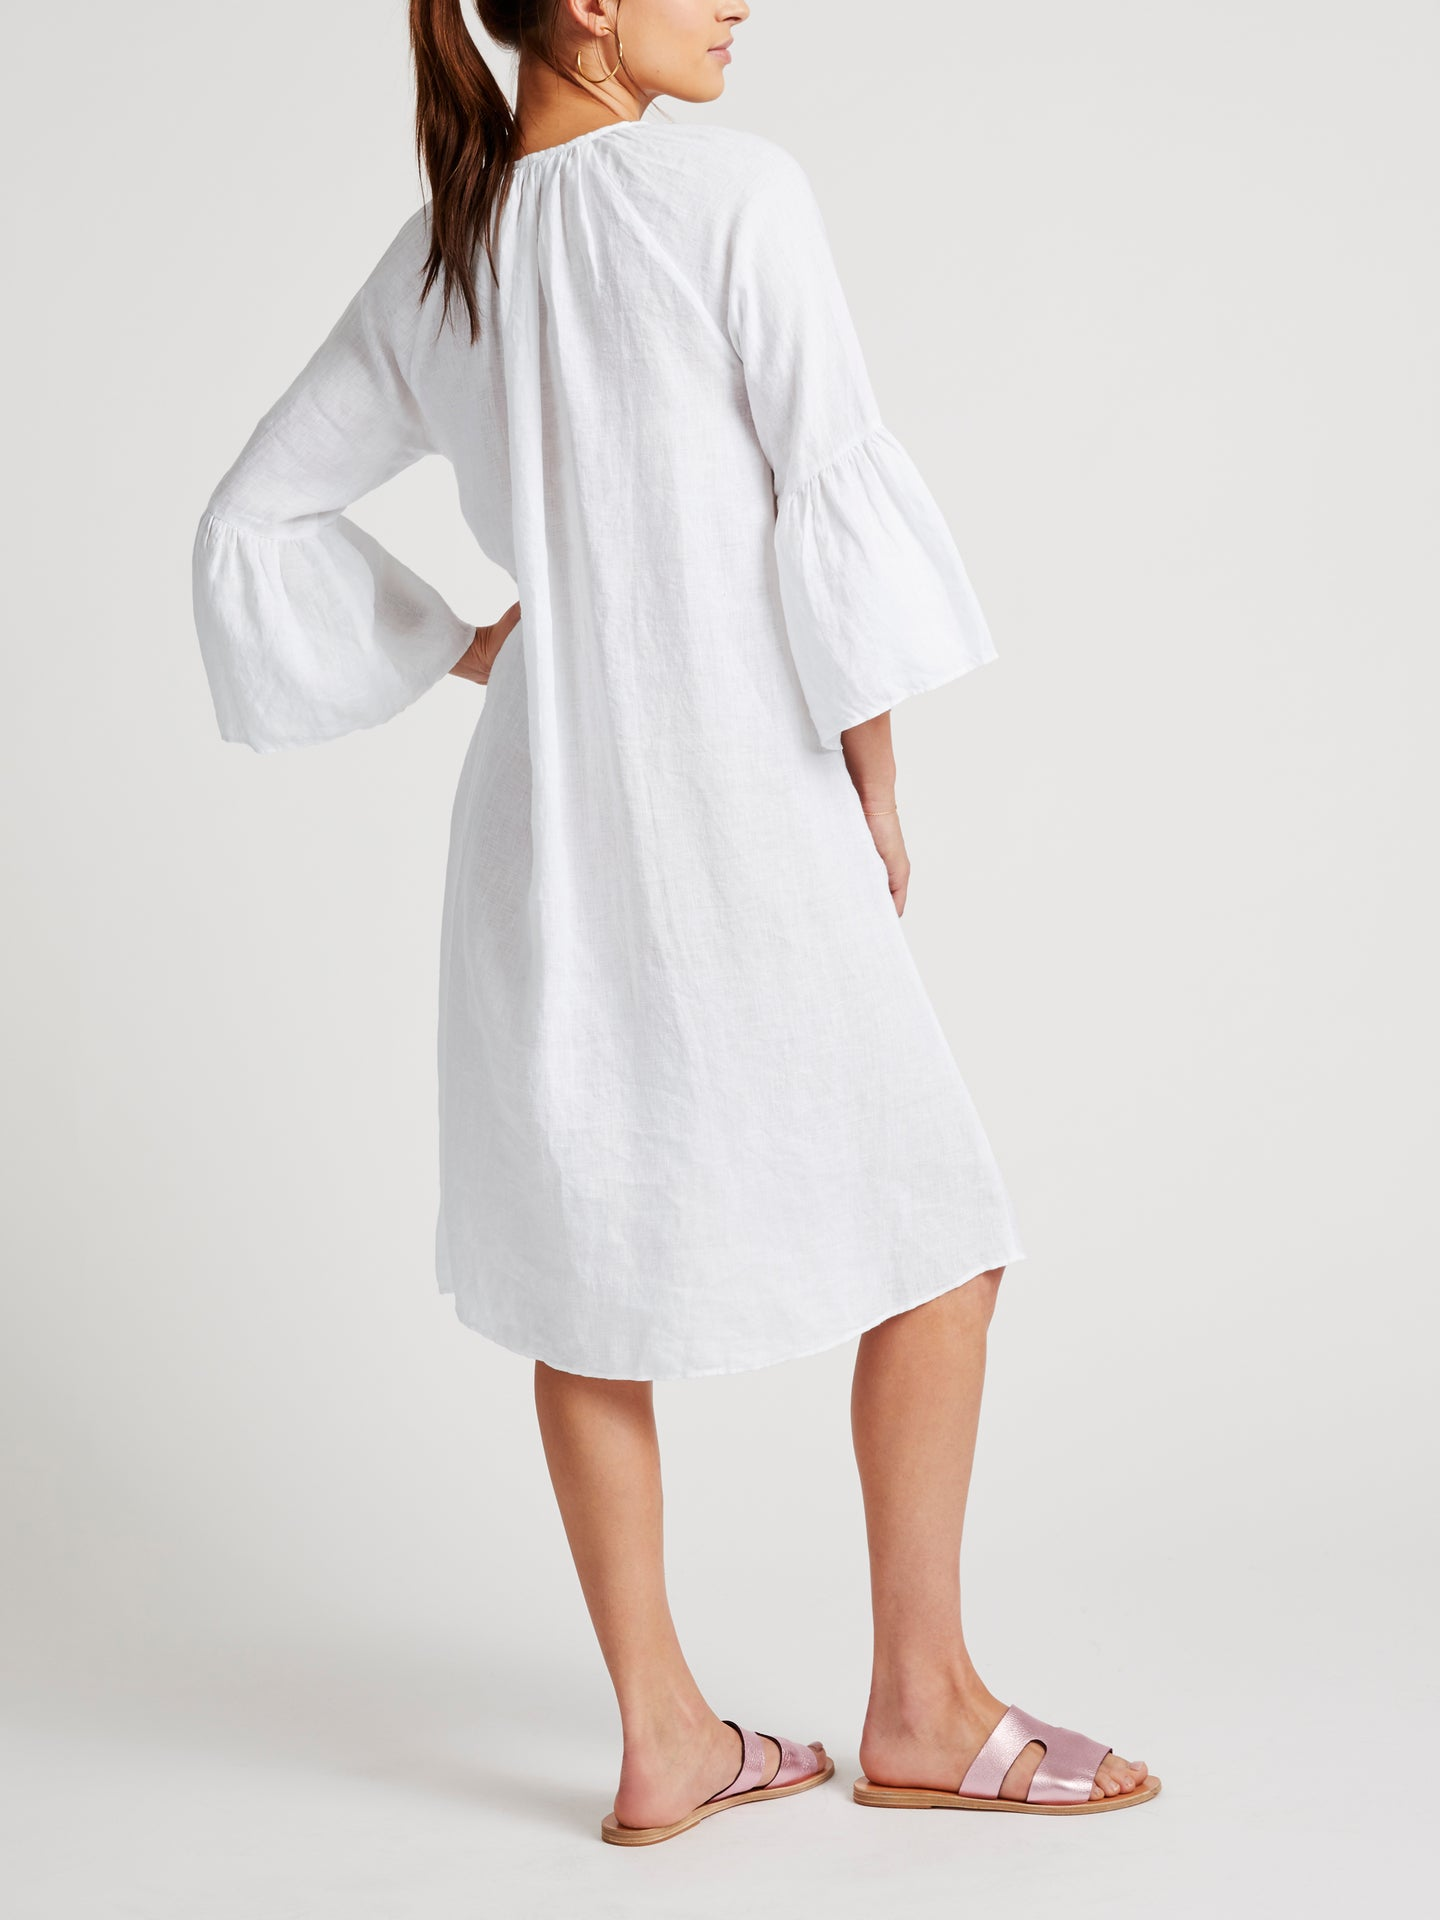 Elizabeth linen fluted sleeve dress